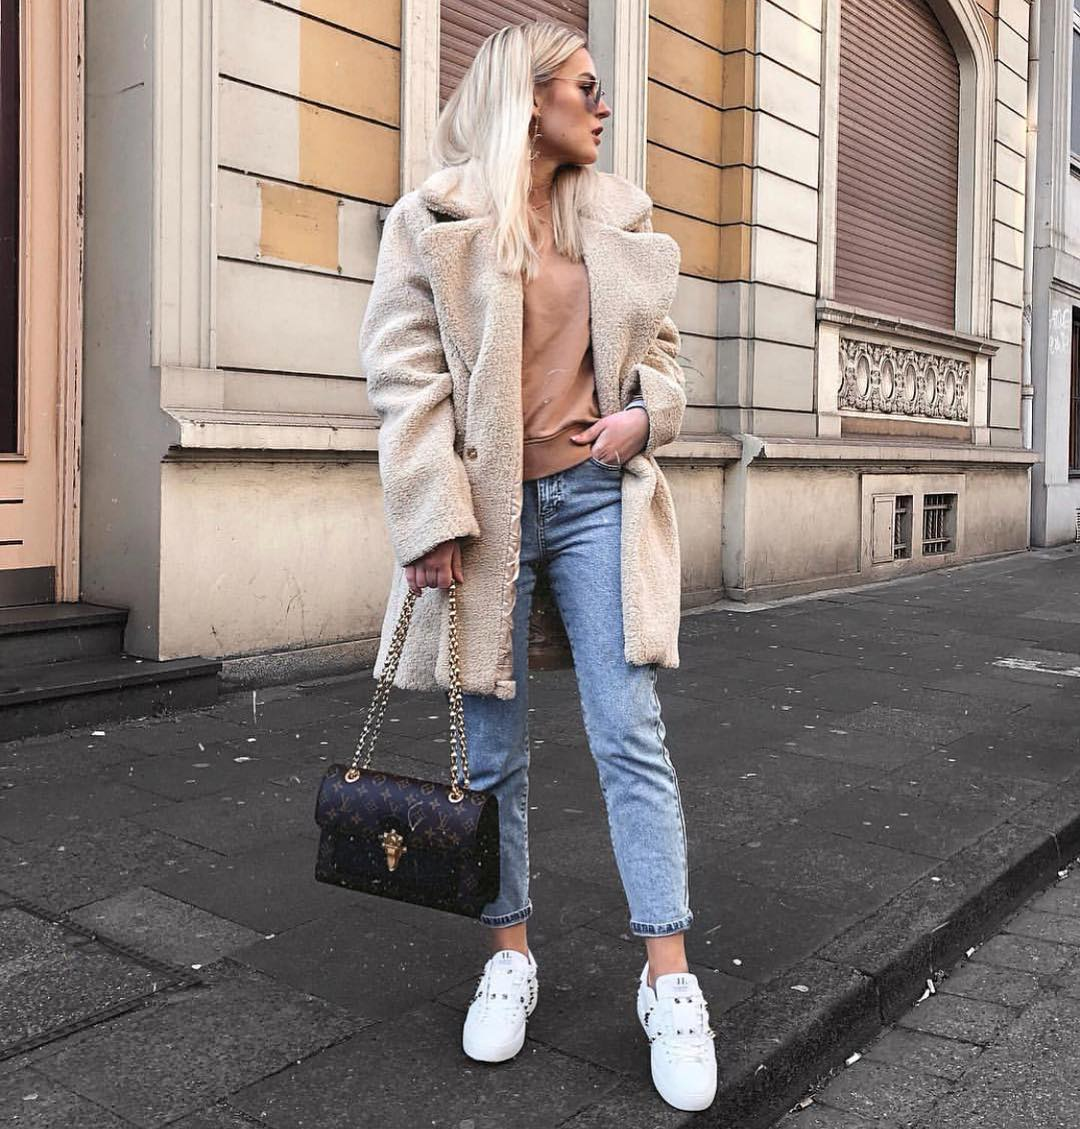 White Teddy Bear Coat With Wash Blue Jeans And White Chunky Sneakers 2019